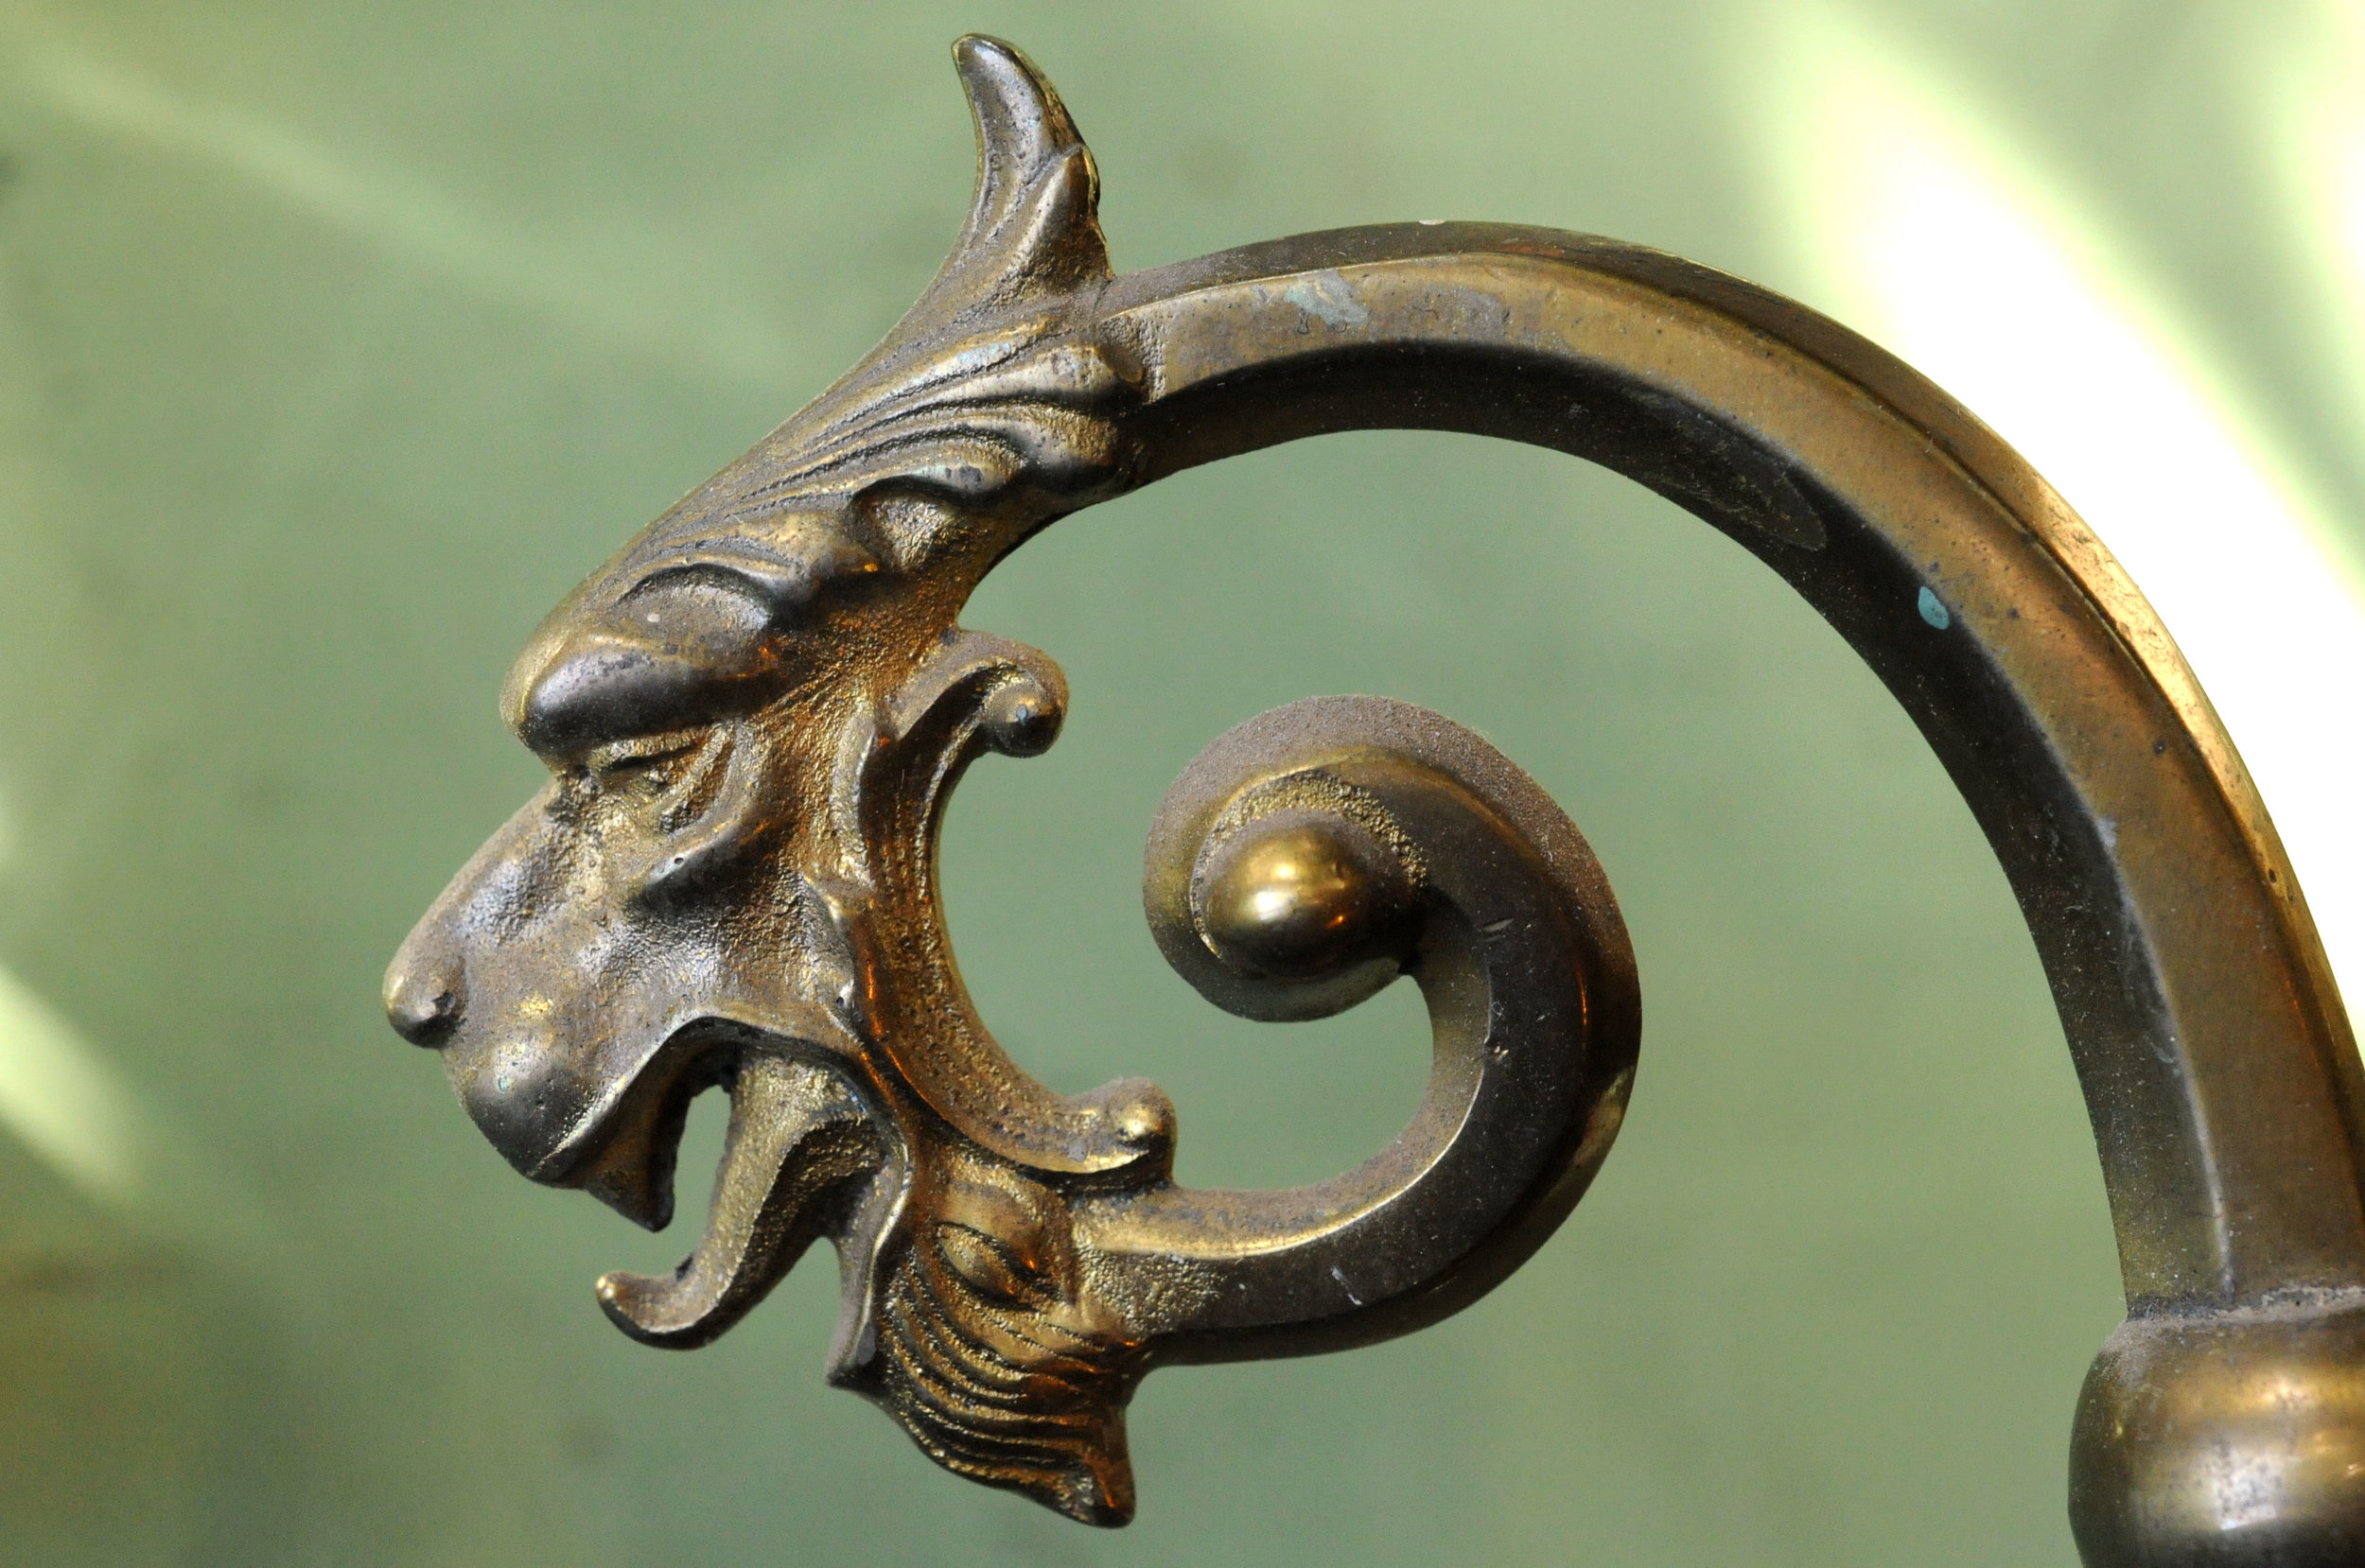 42022-griffin-three-arm-sconce-face-detail.jpg